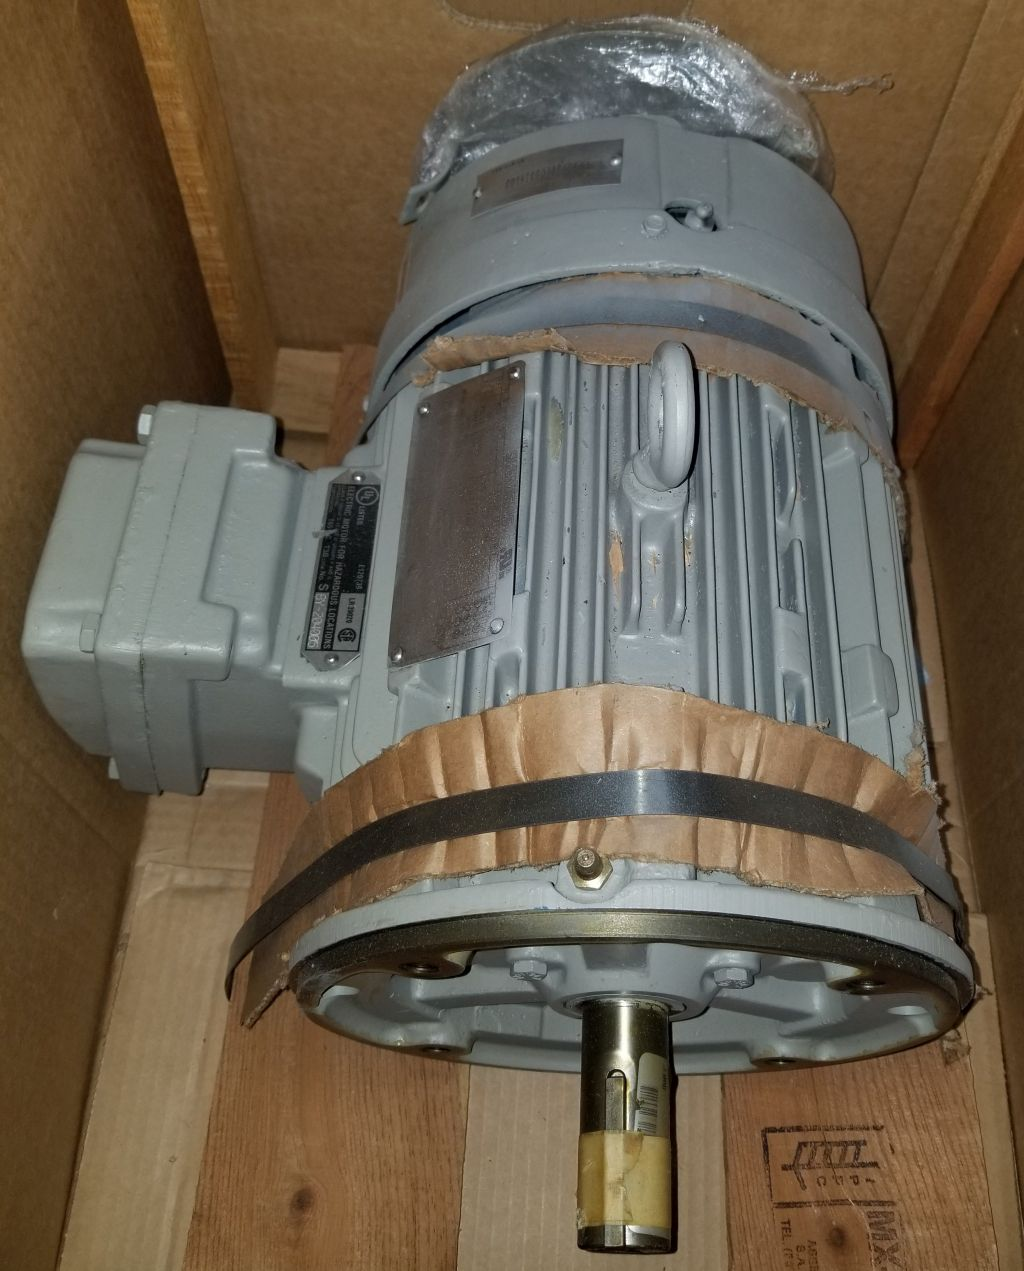 1MB29211CD316LG3-Siemens-Dealers Industrial